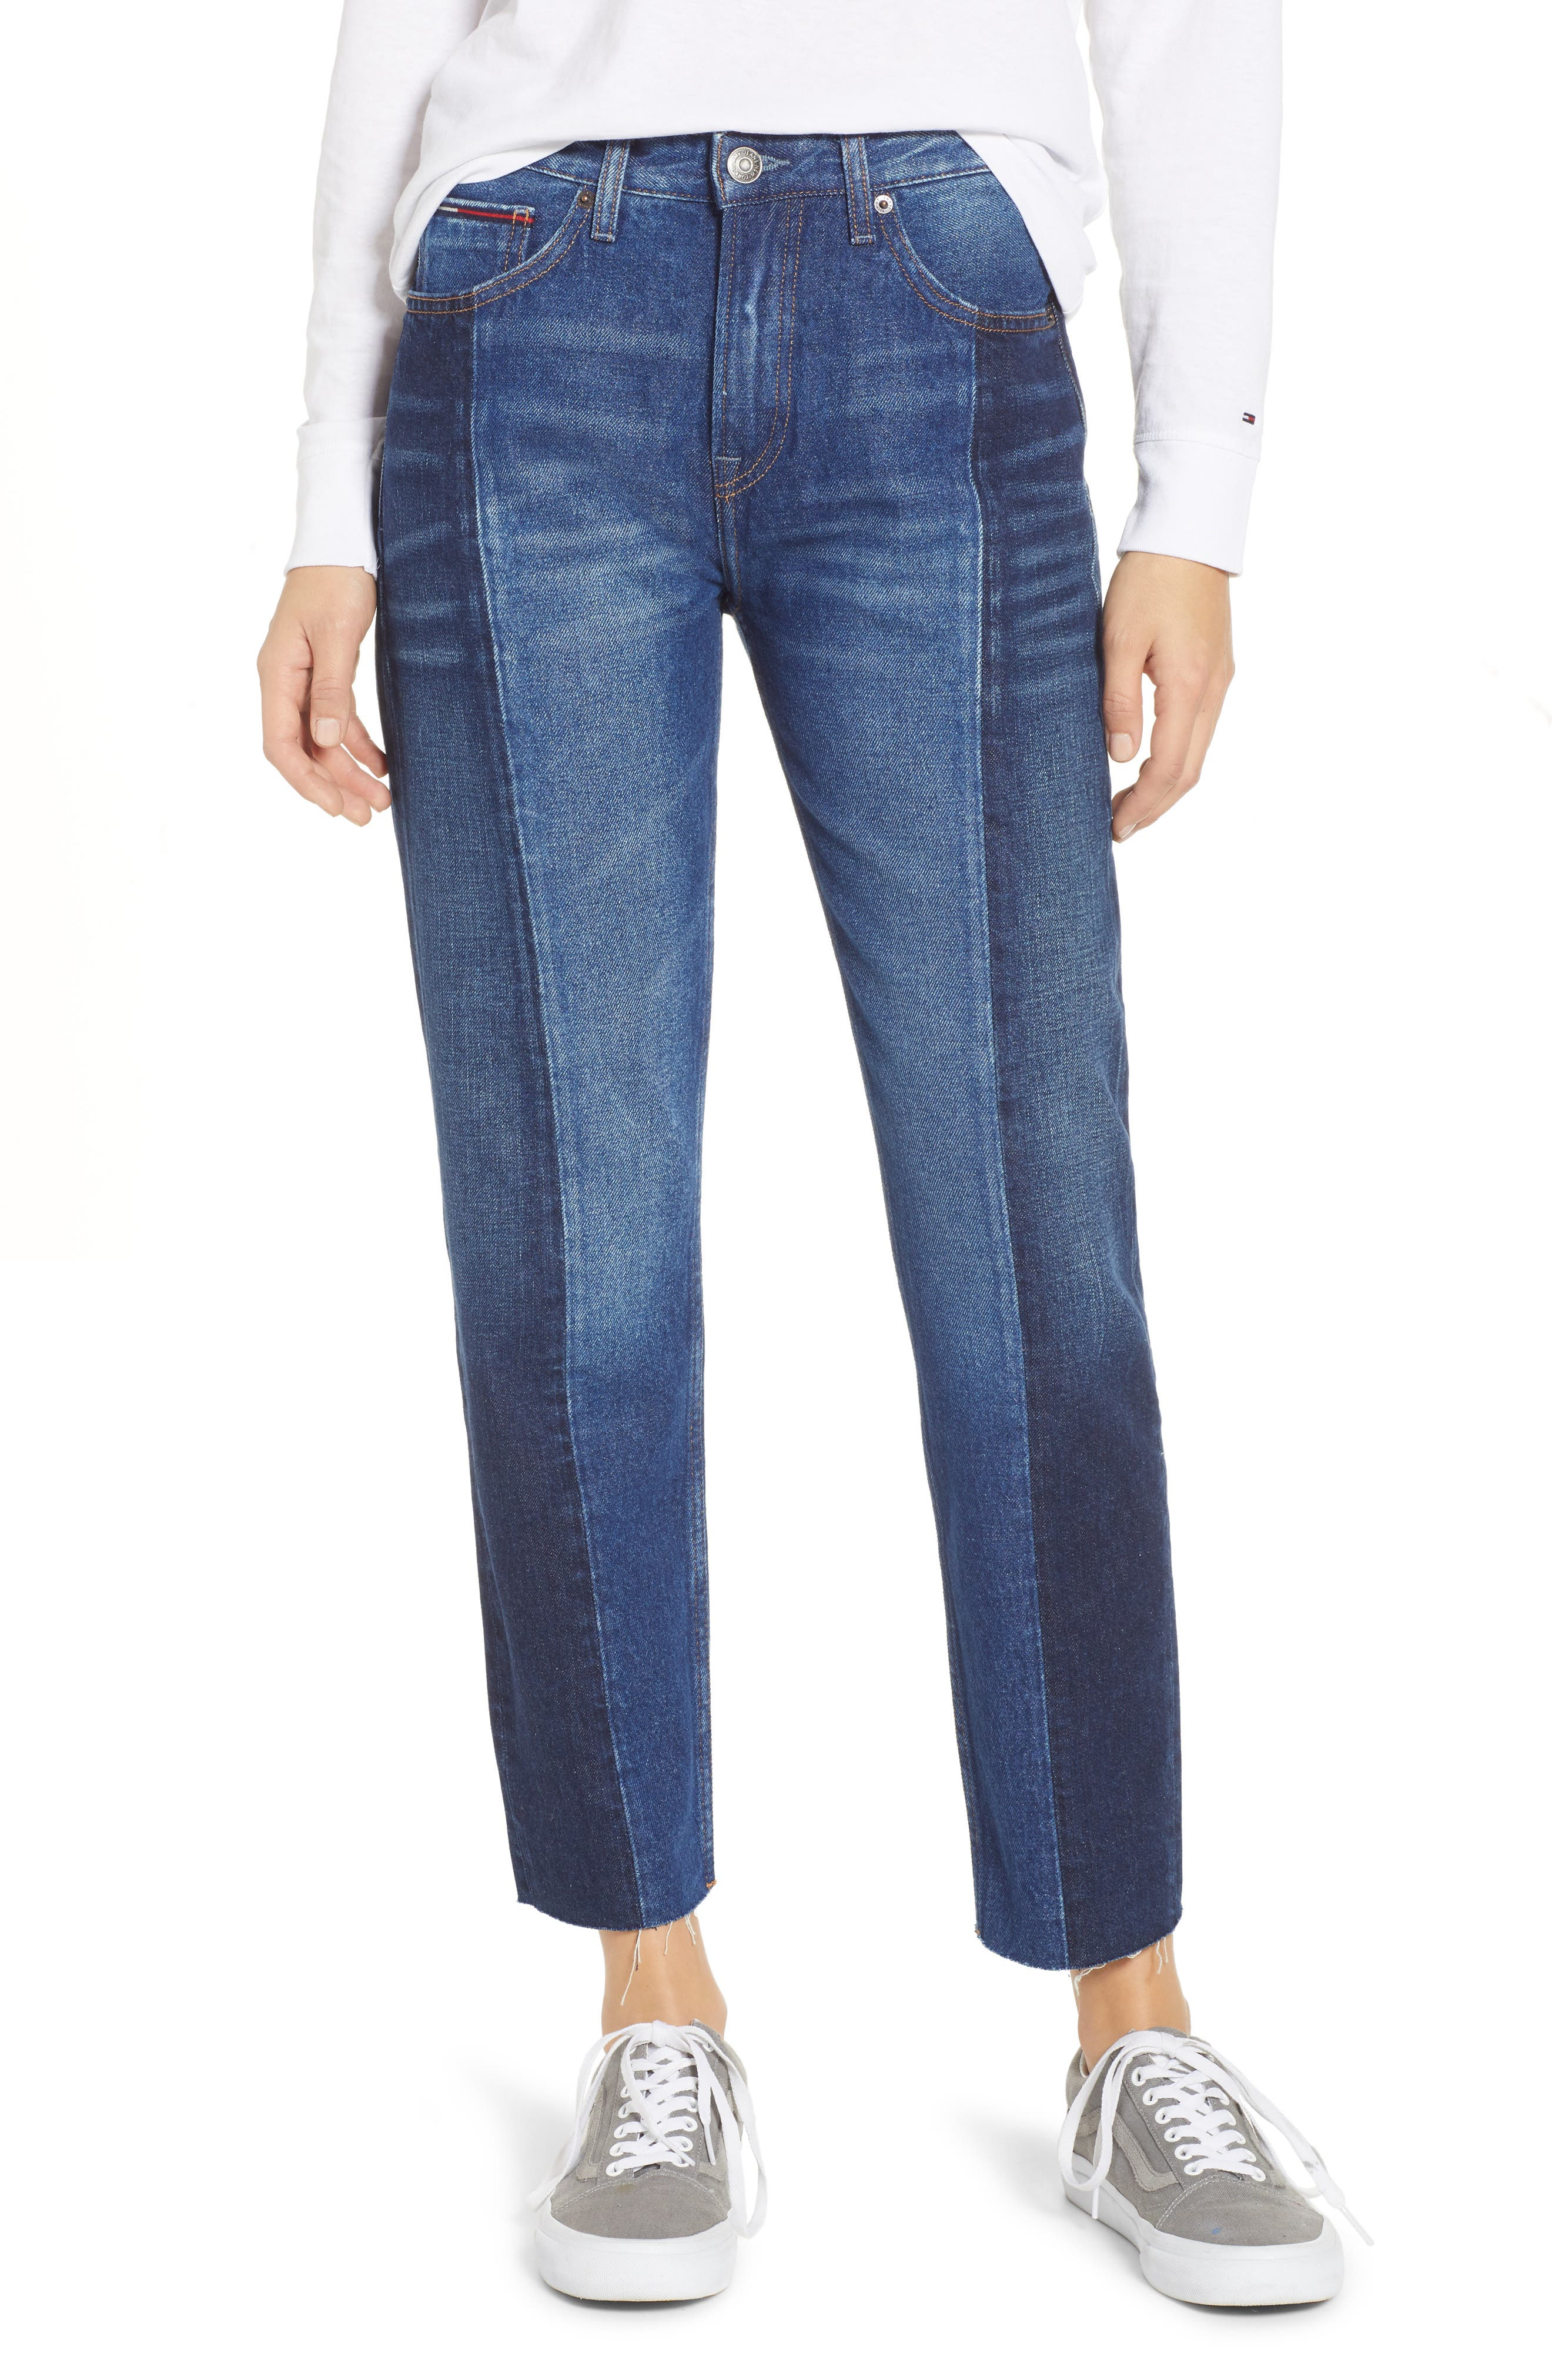 Izzy Paneled Slim Ankle Jeans,                             Main thumbnail 1, color,                             TOMMY JEAN NEW COMBO